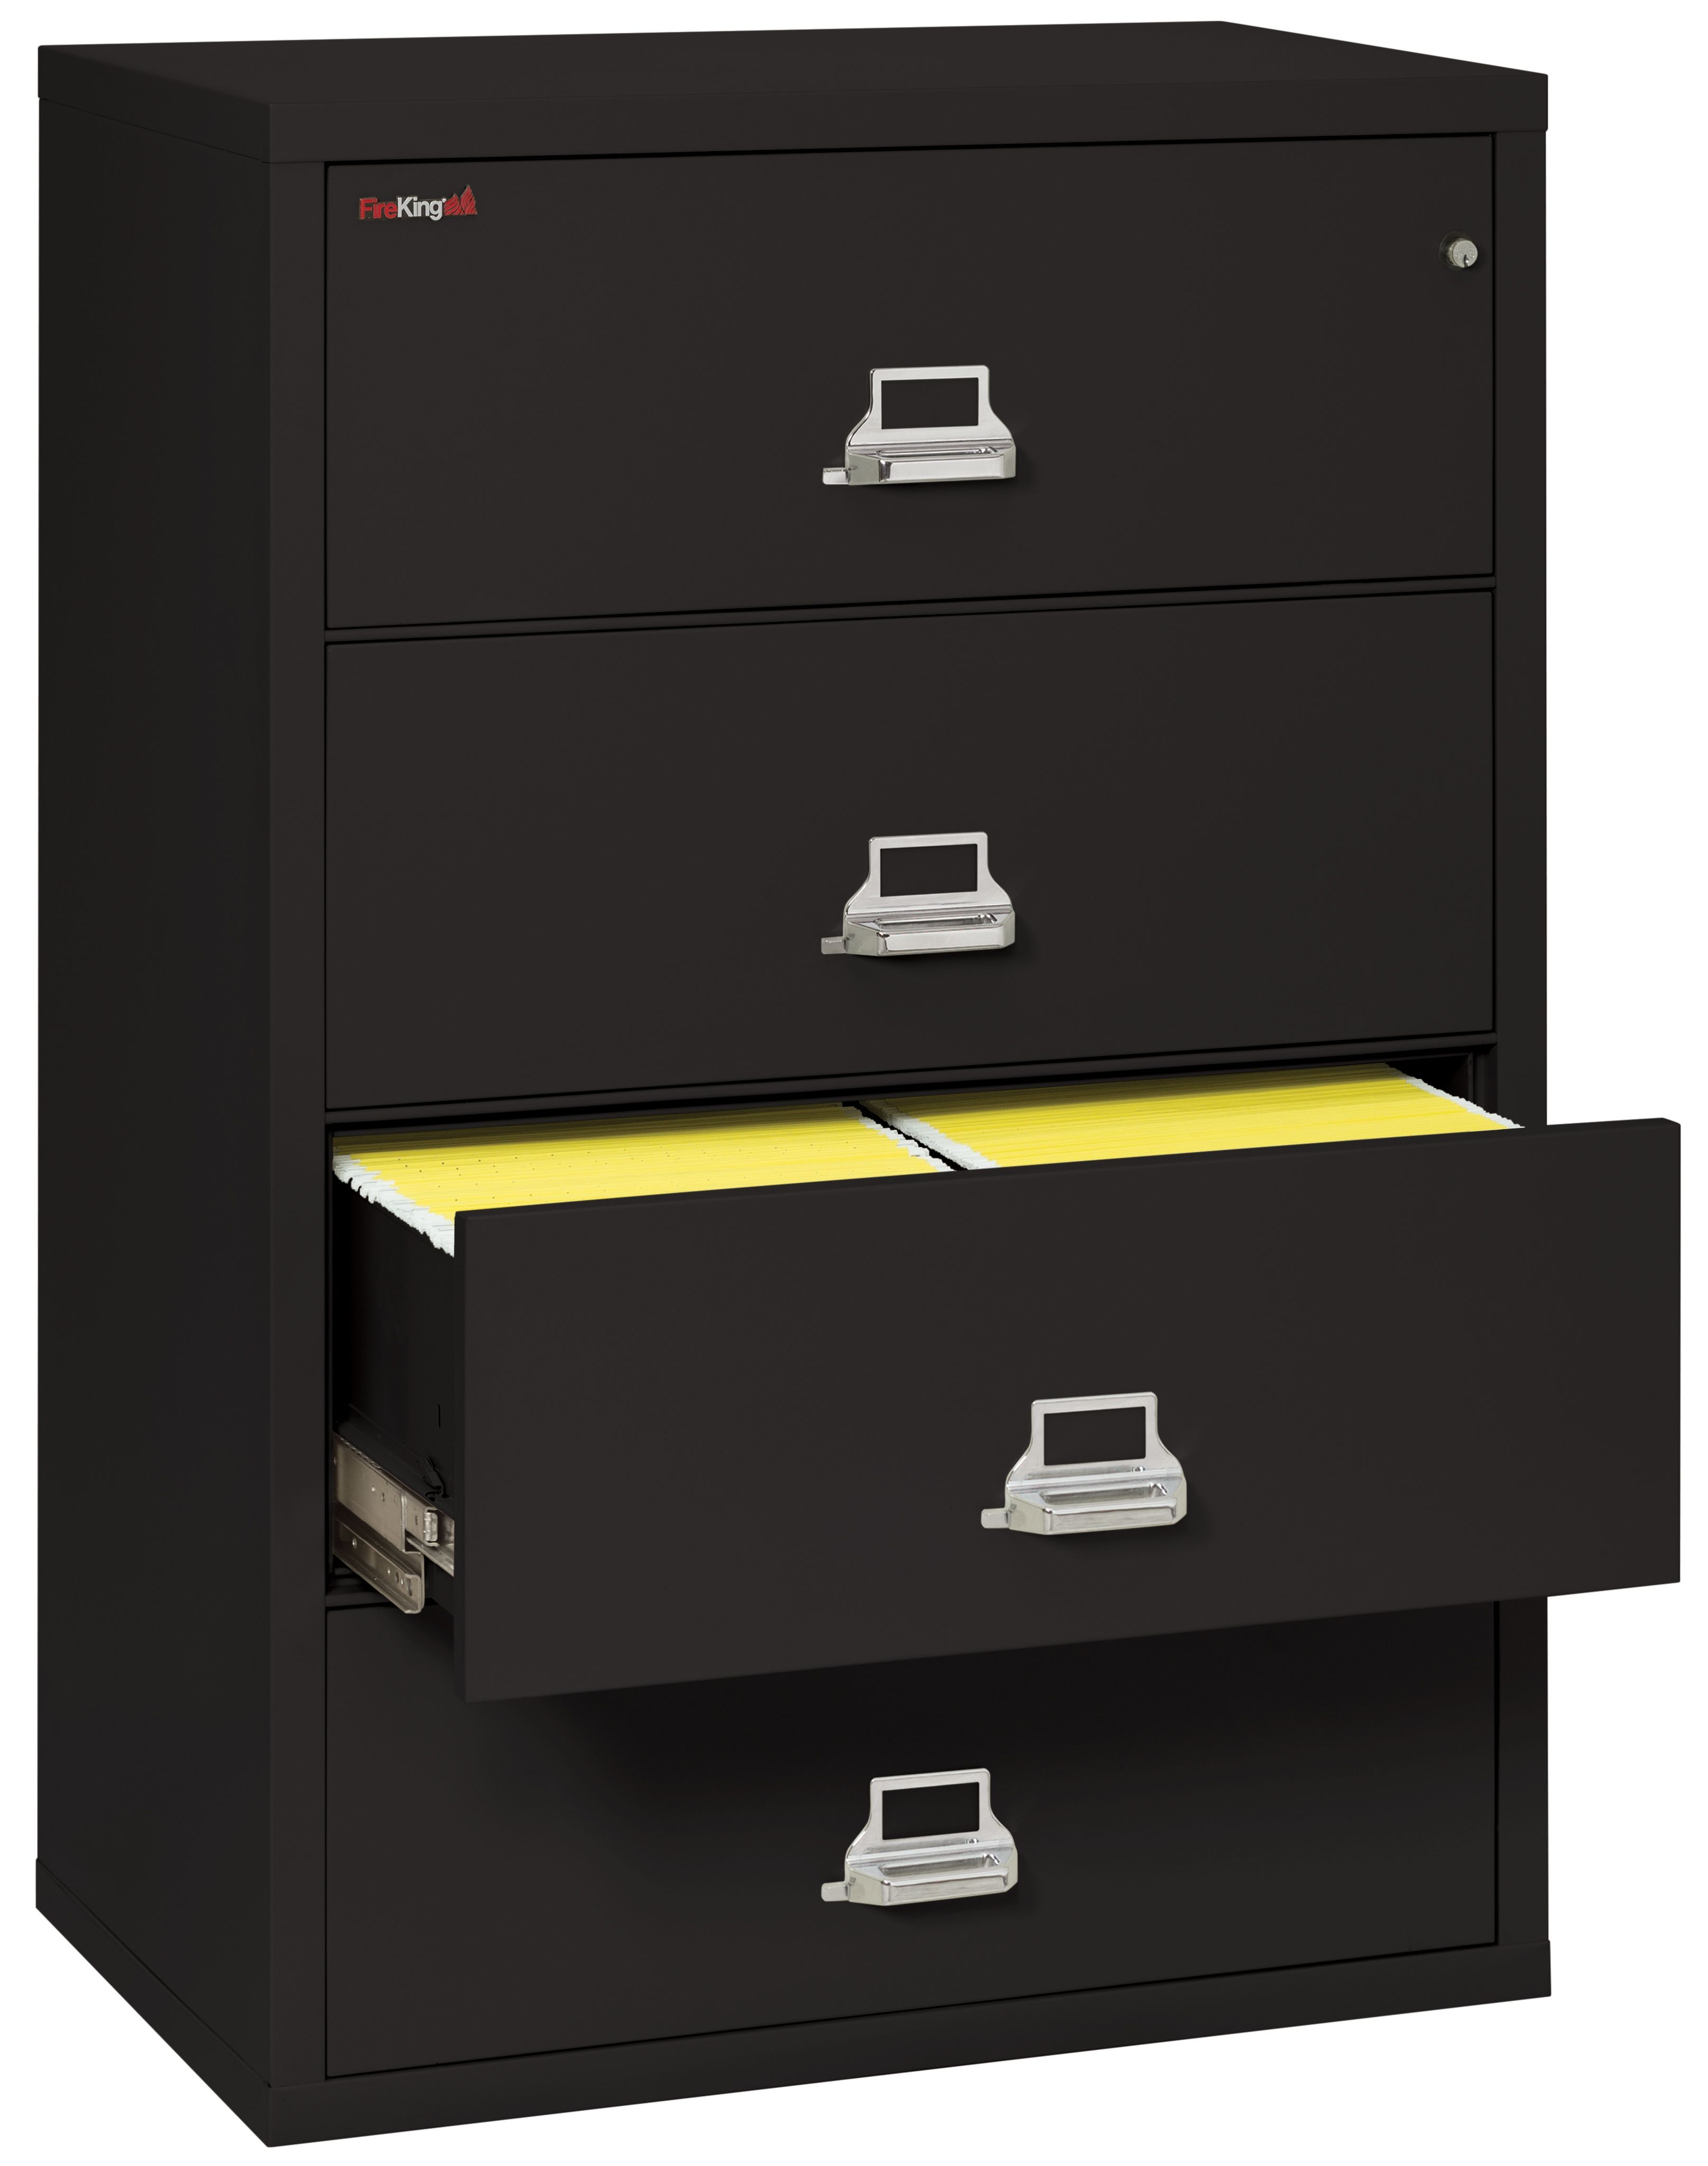 drawers file thinkgeek accessories filing card from cabinet open business mini organizing desk